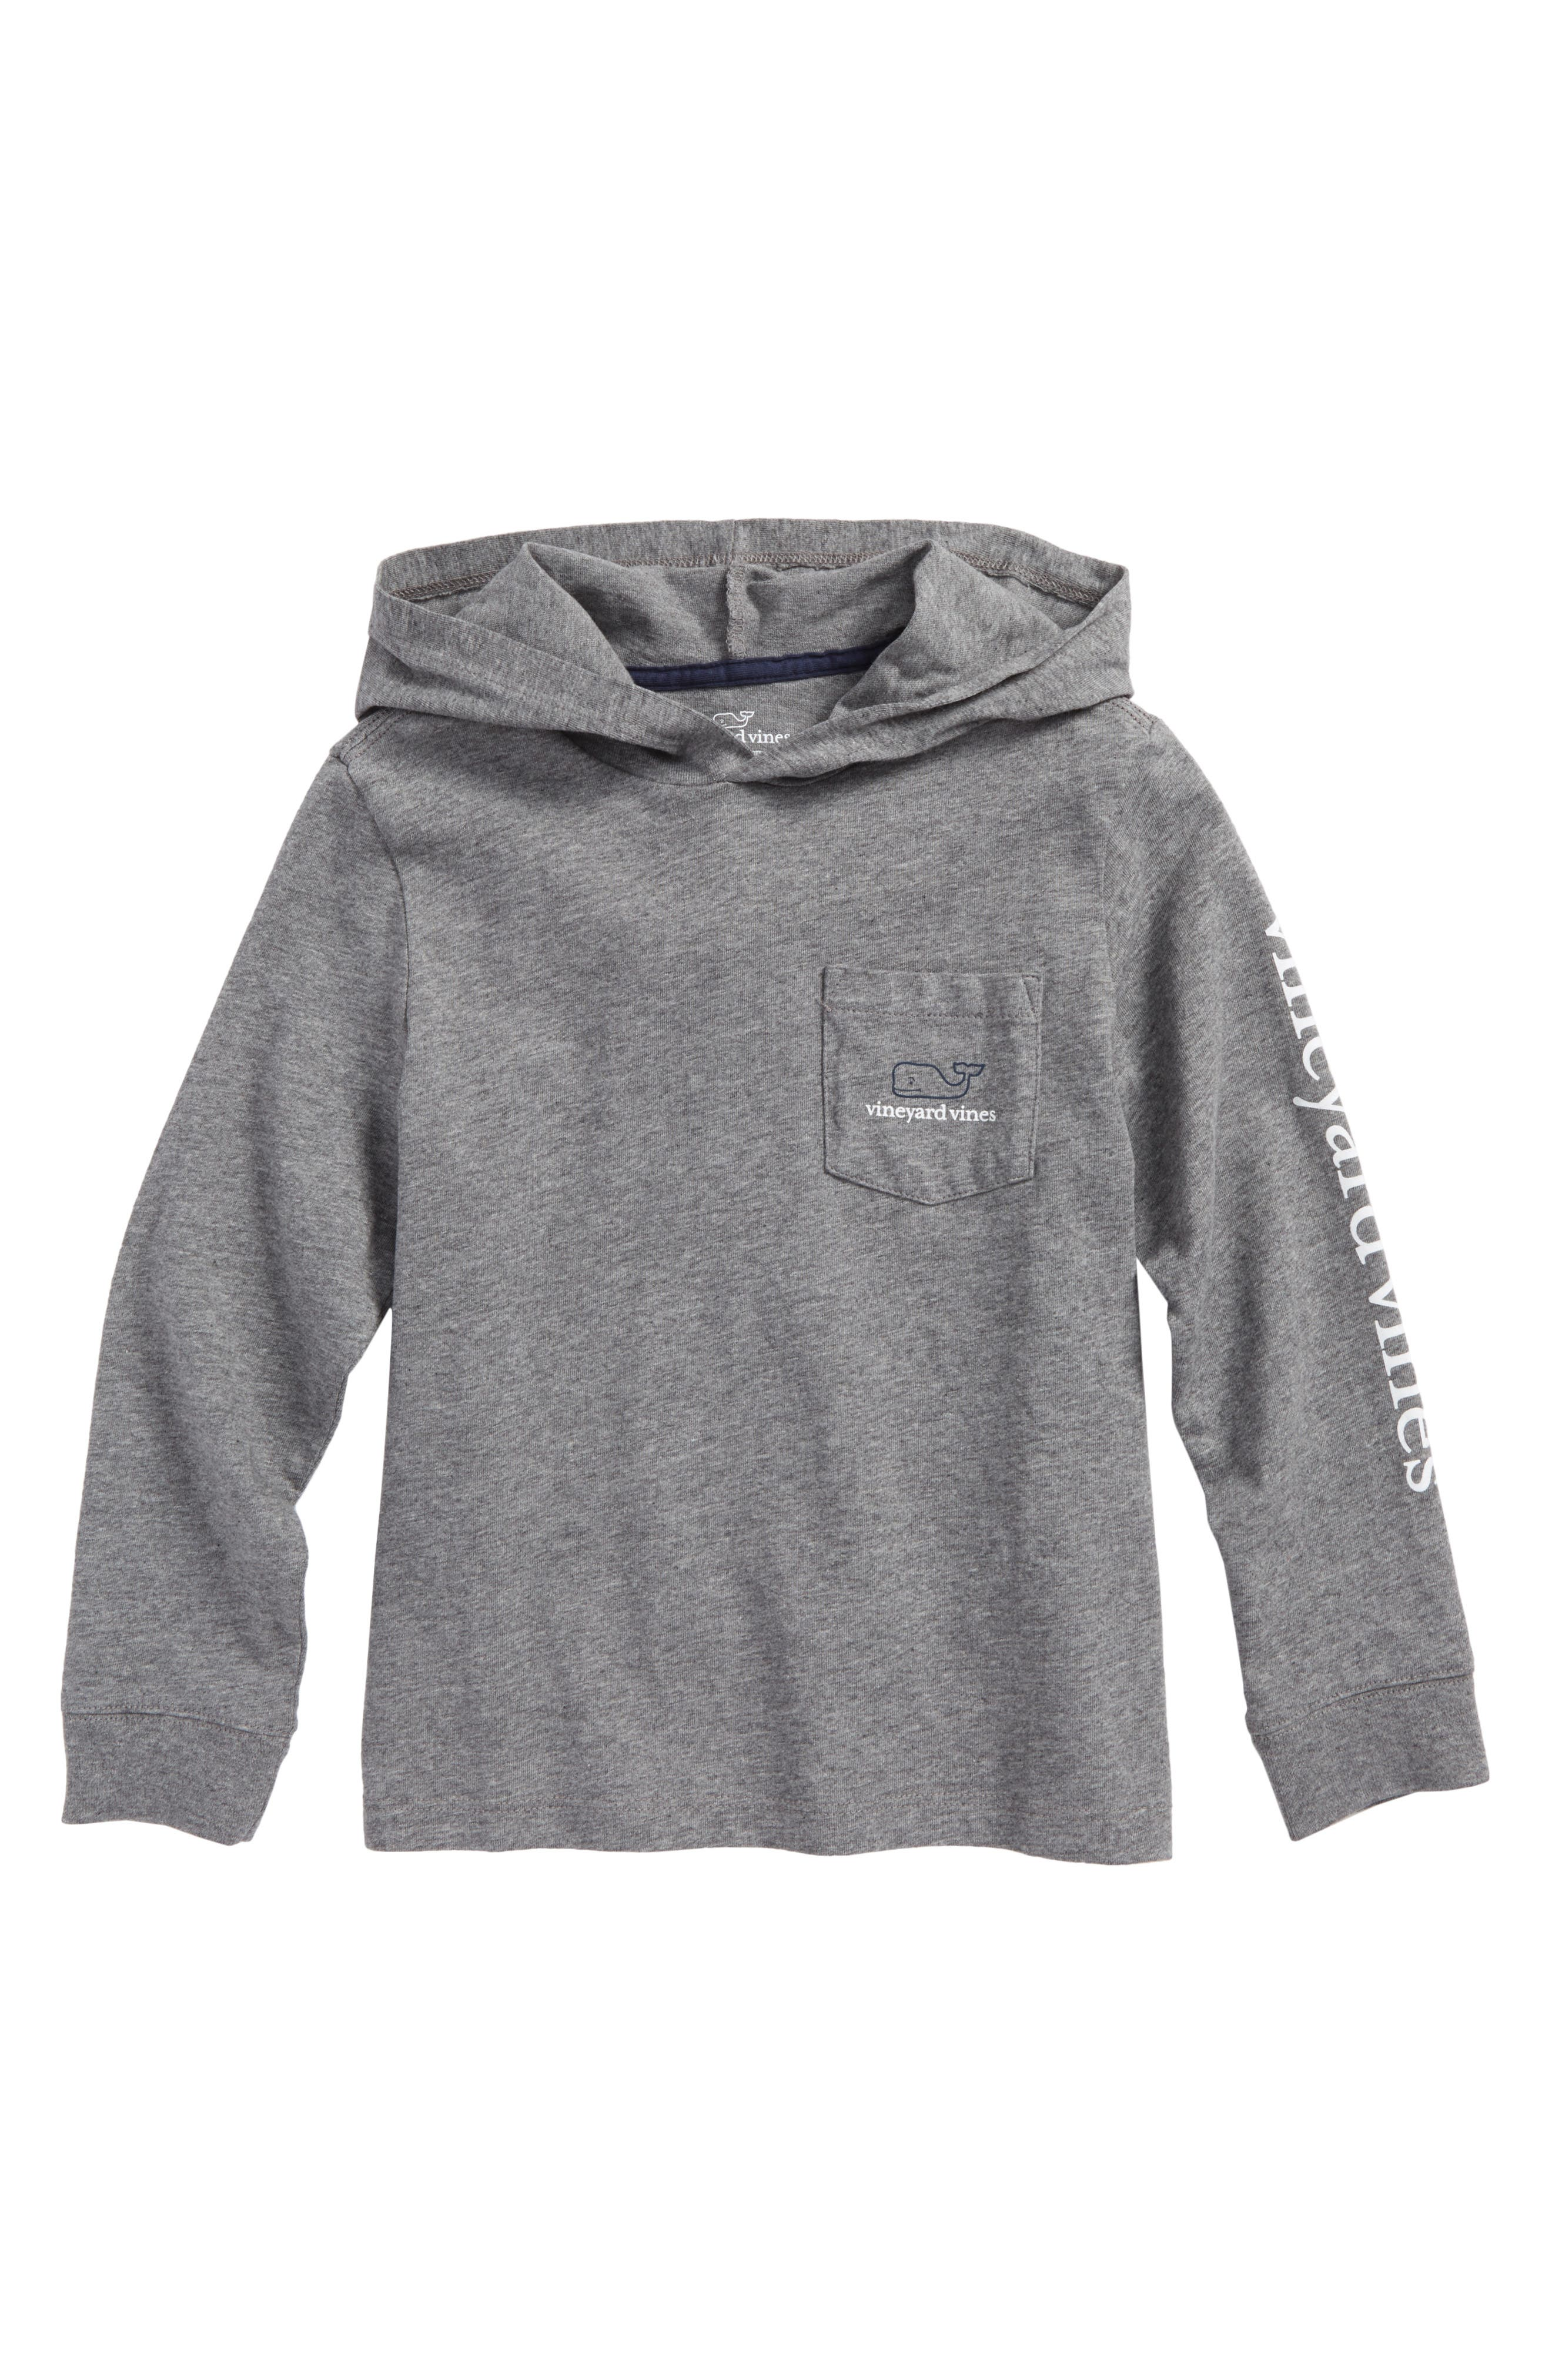 Two-Tone Whale Hooded T-Shirt,                         Main,                         color, 030